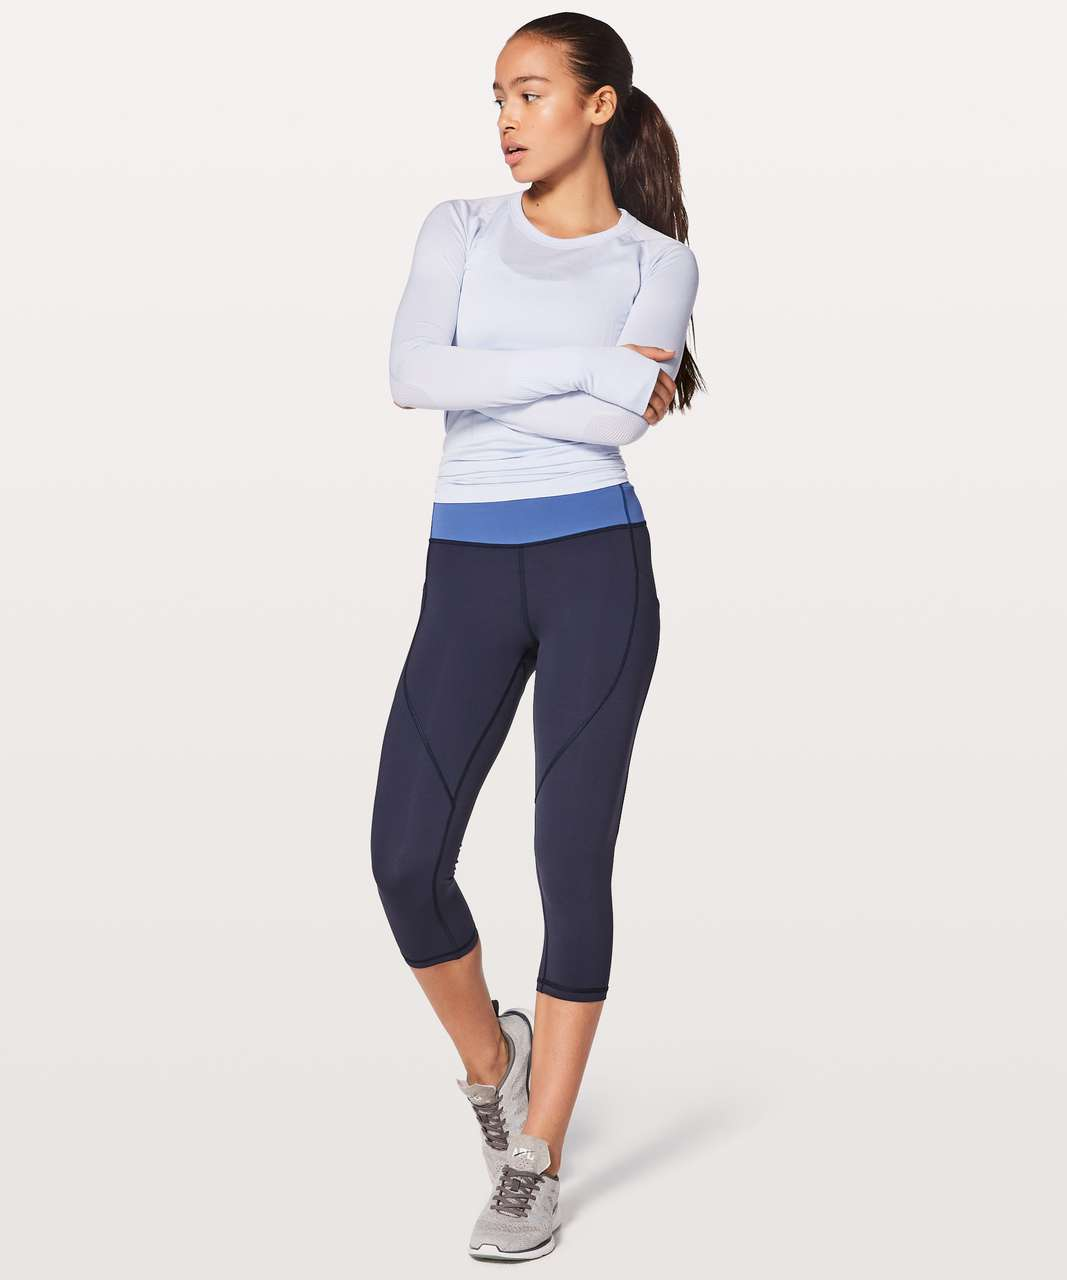 "Lululemon Quick Feet Crop 19"" - Midnight Navy / Moroccan Blue"